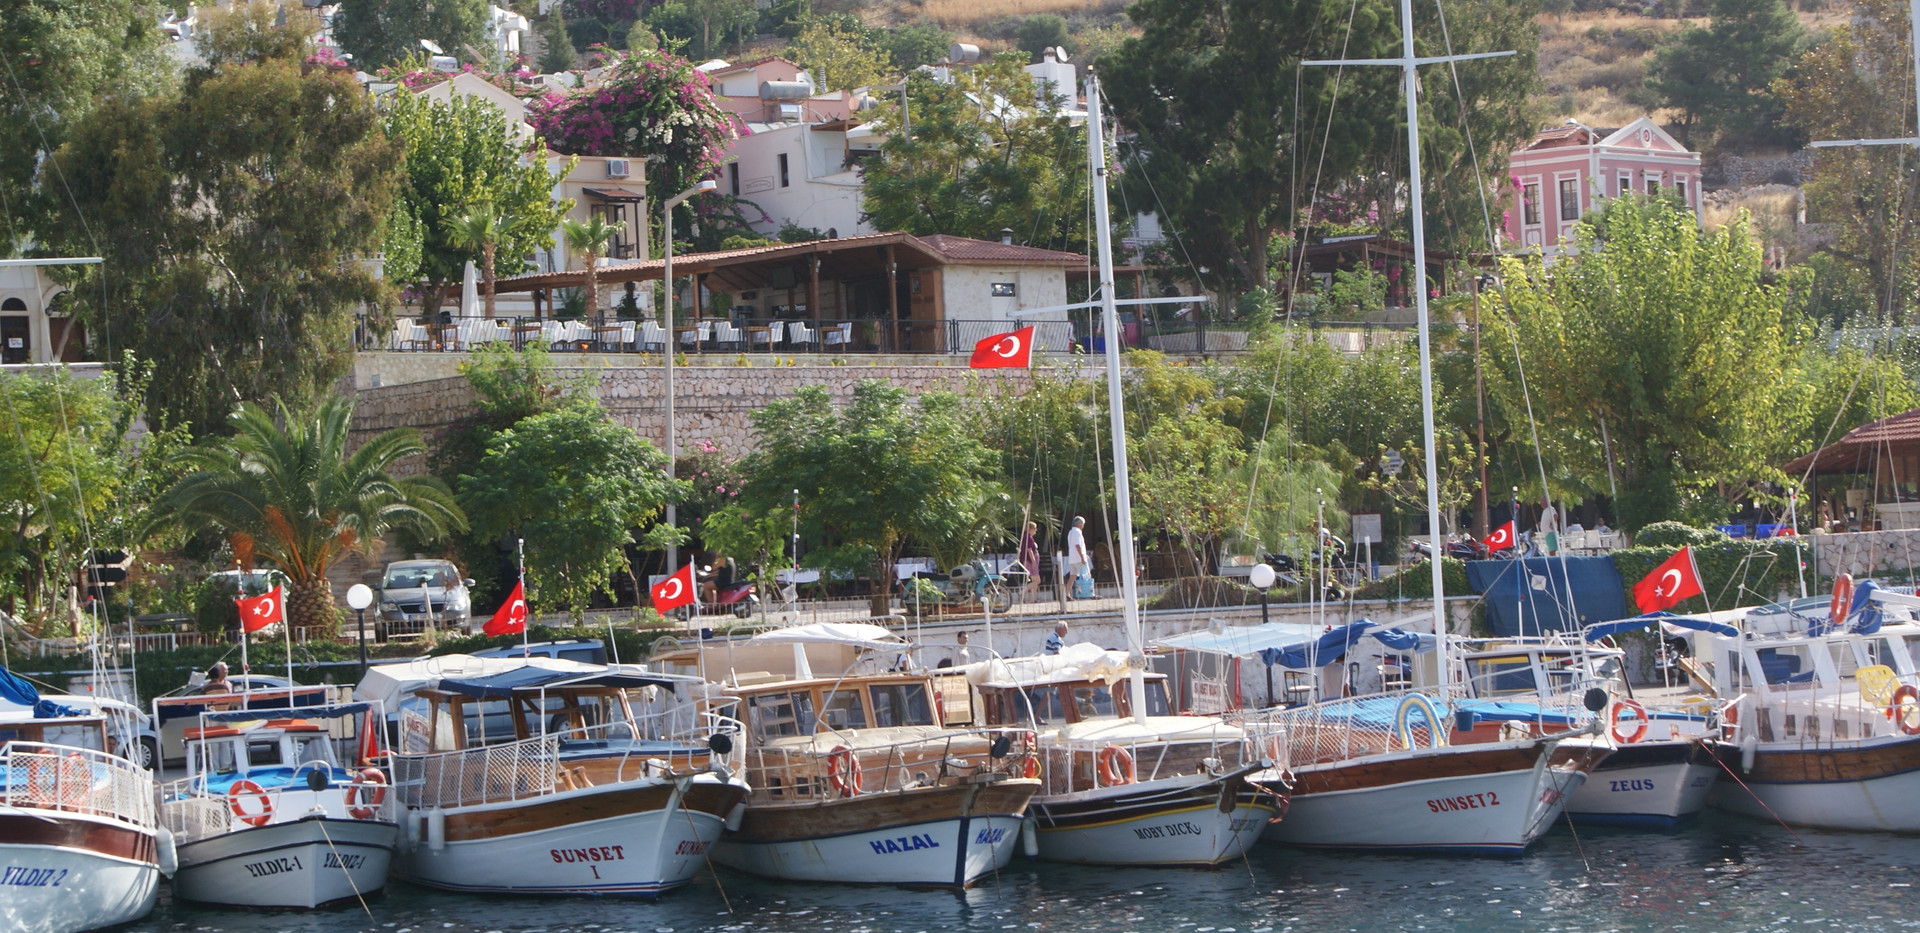 boats at harbour.jpg